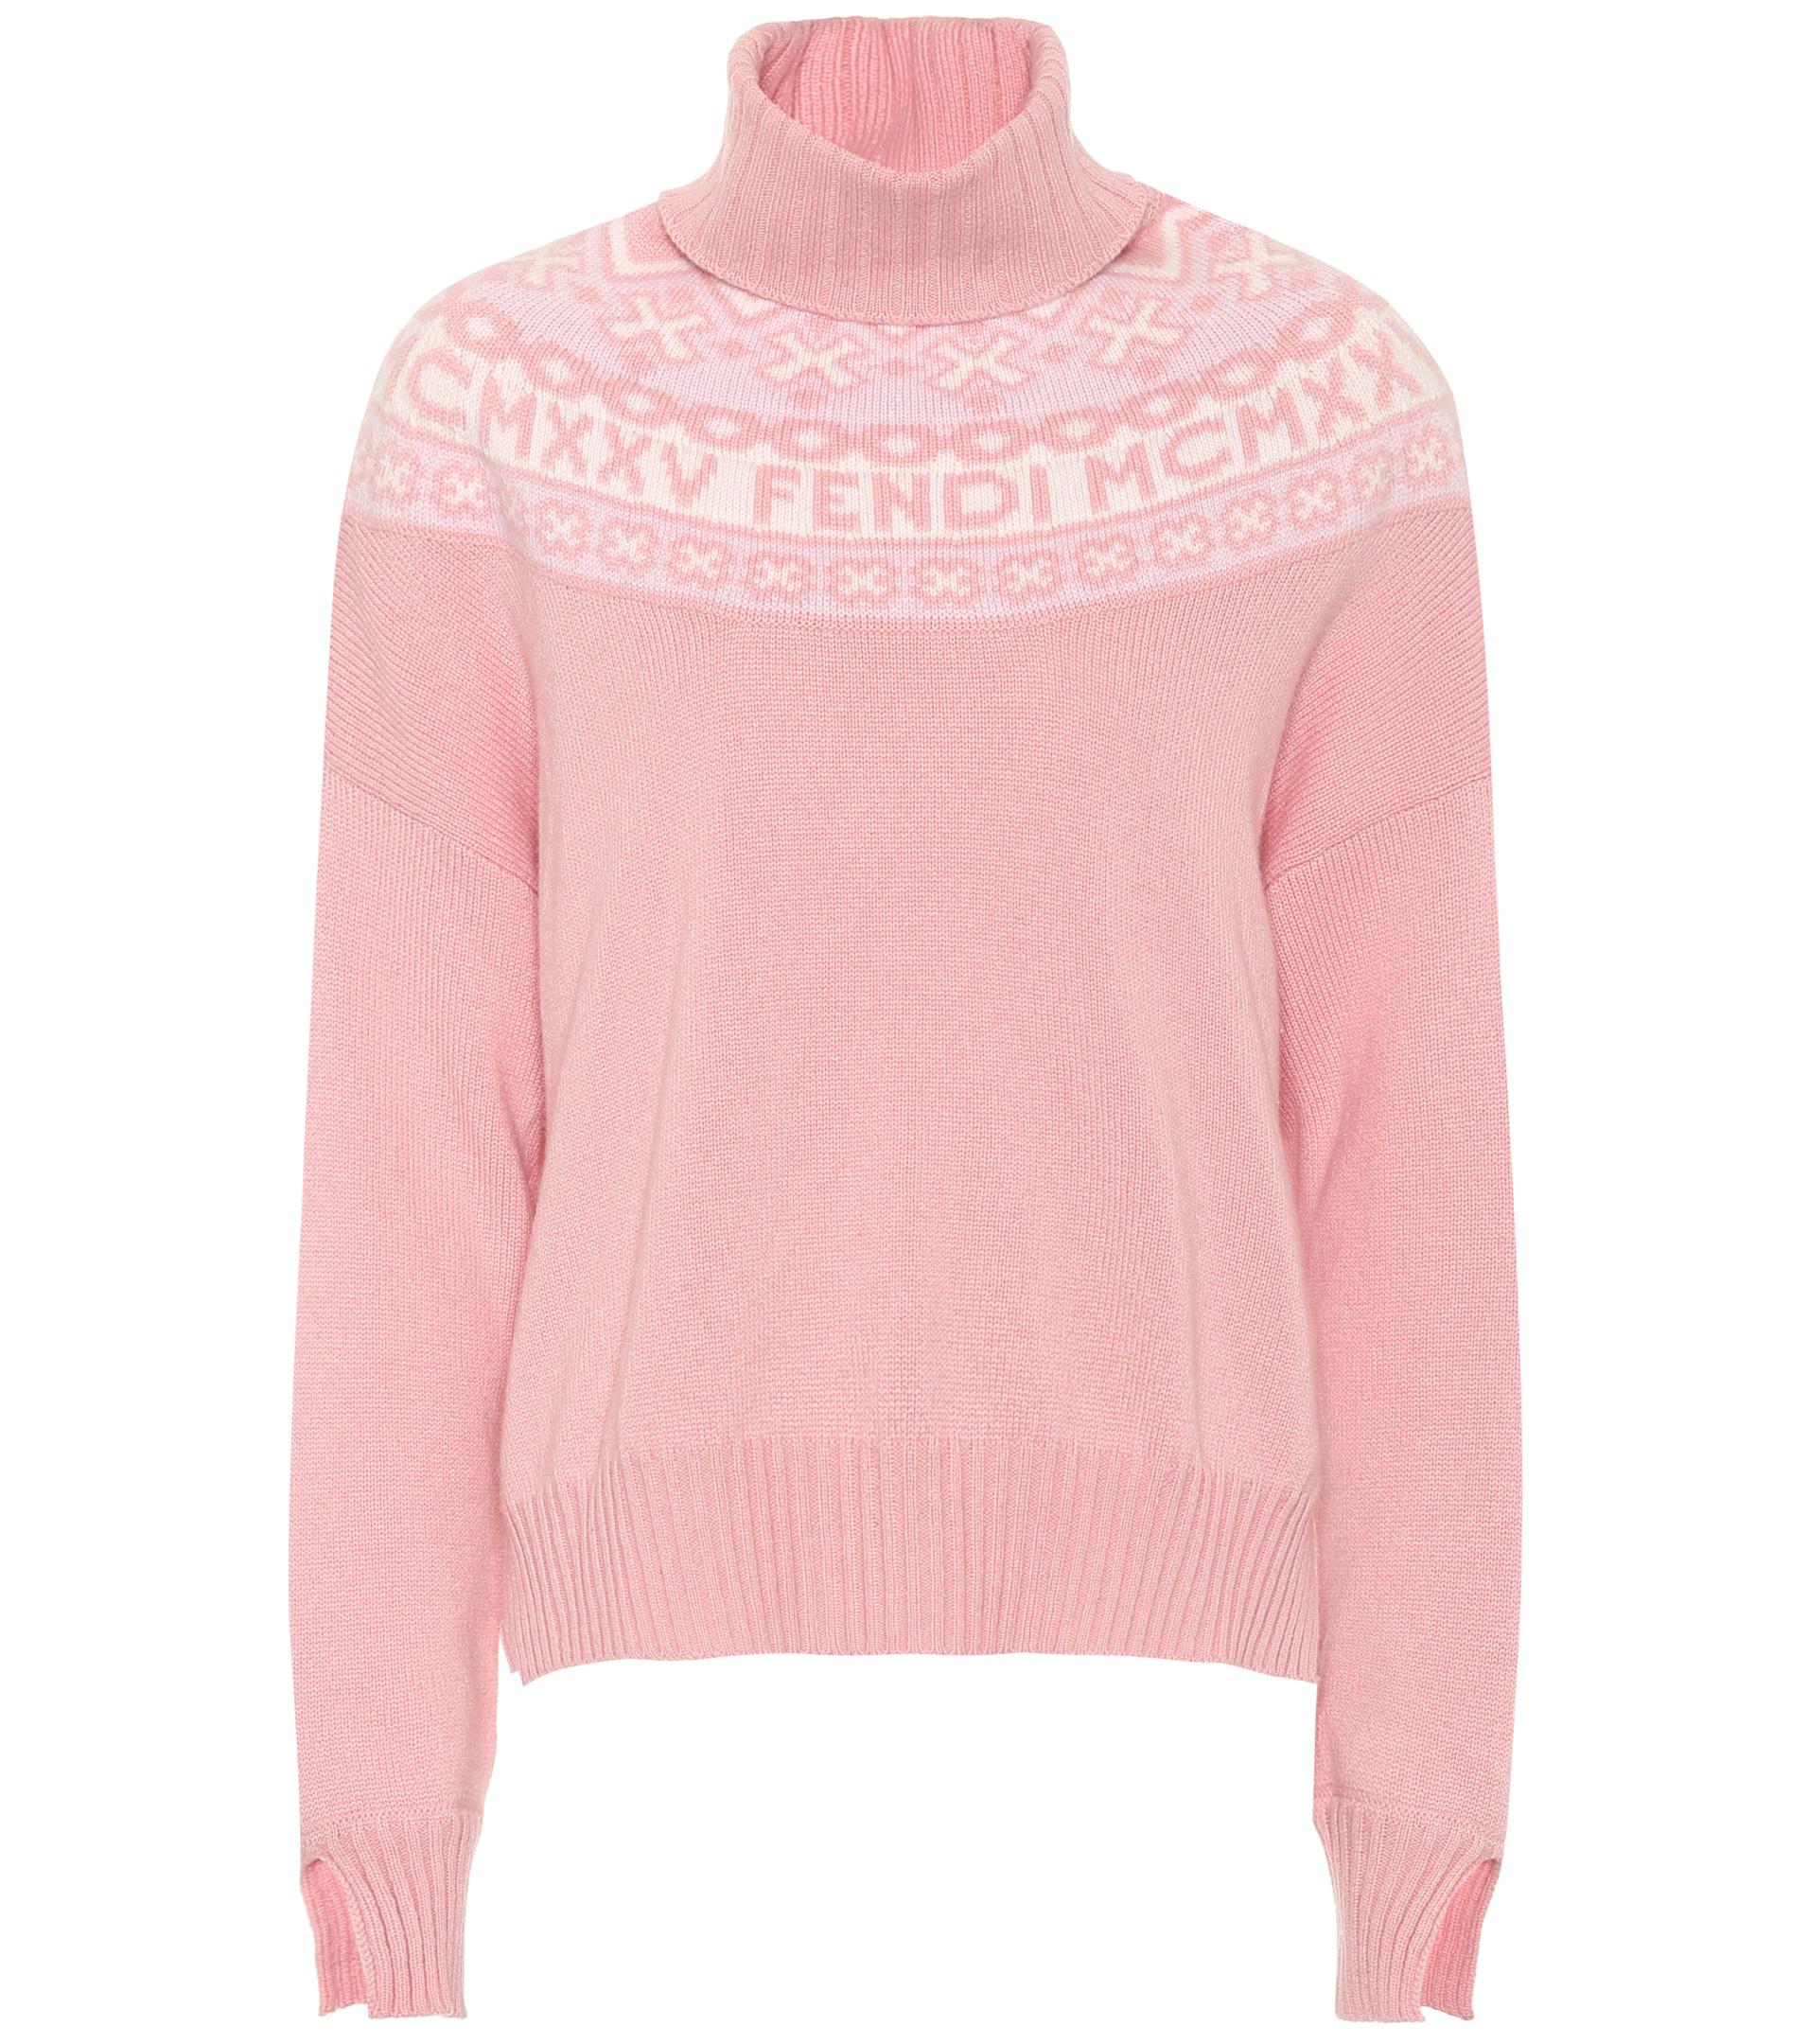 Fendi Exclusive To Mytheresa. Com – Fair Isle Sweater in Pink | Lyst